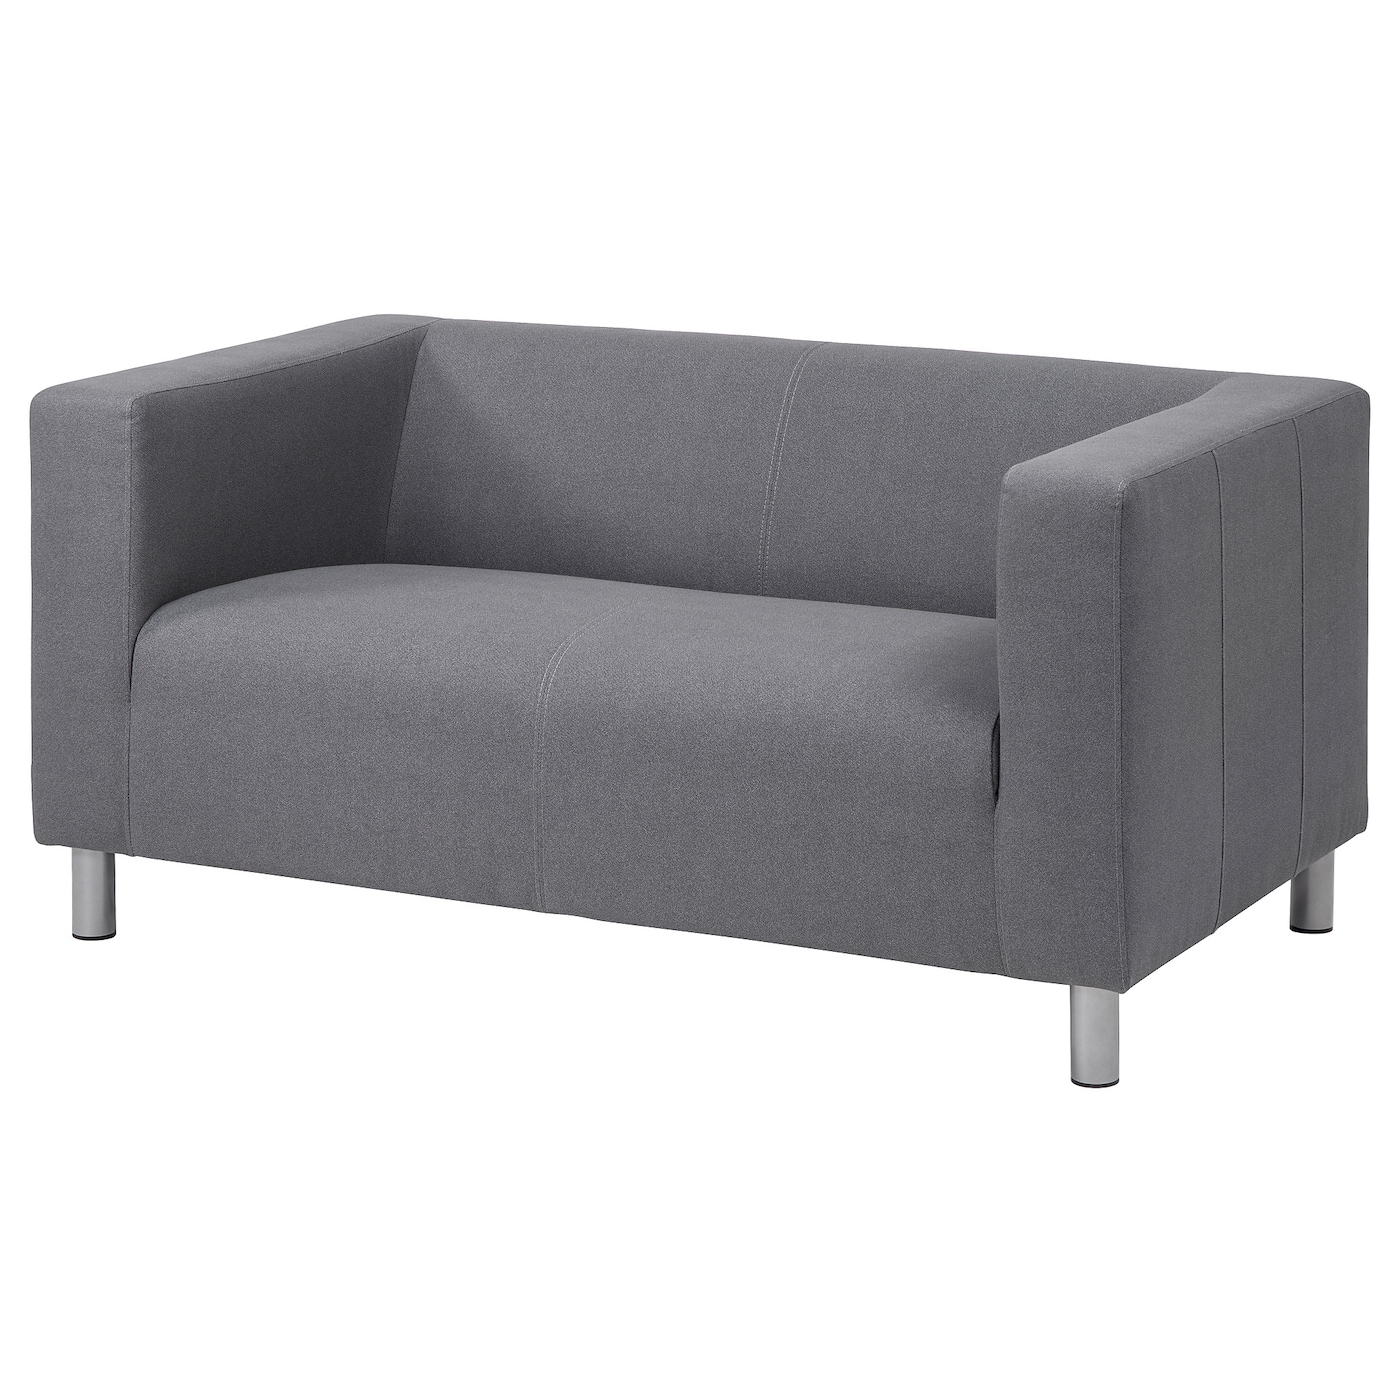 Exceptionnel IKEA KLIPPAN Compact 2 Seat Sofa